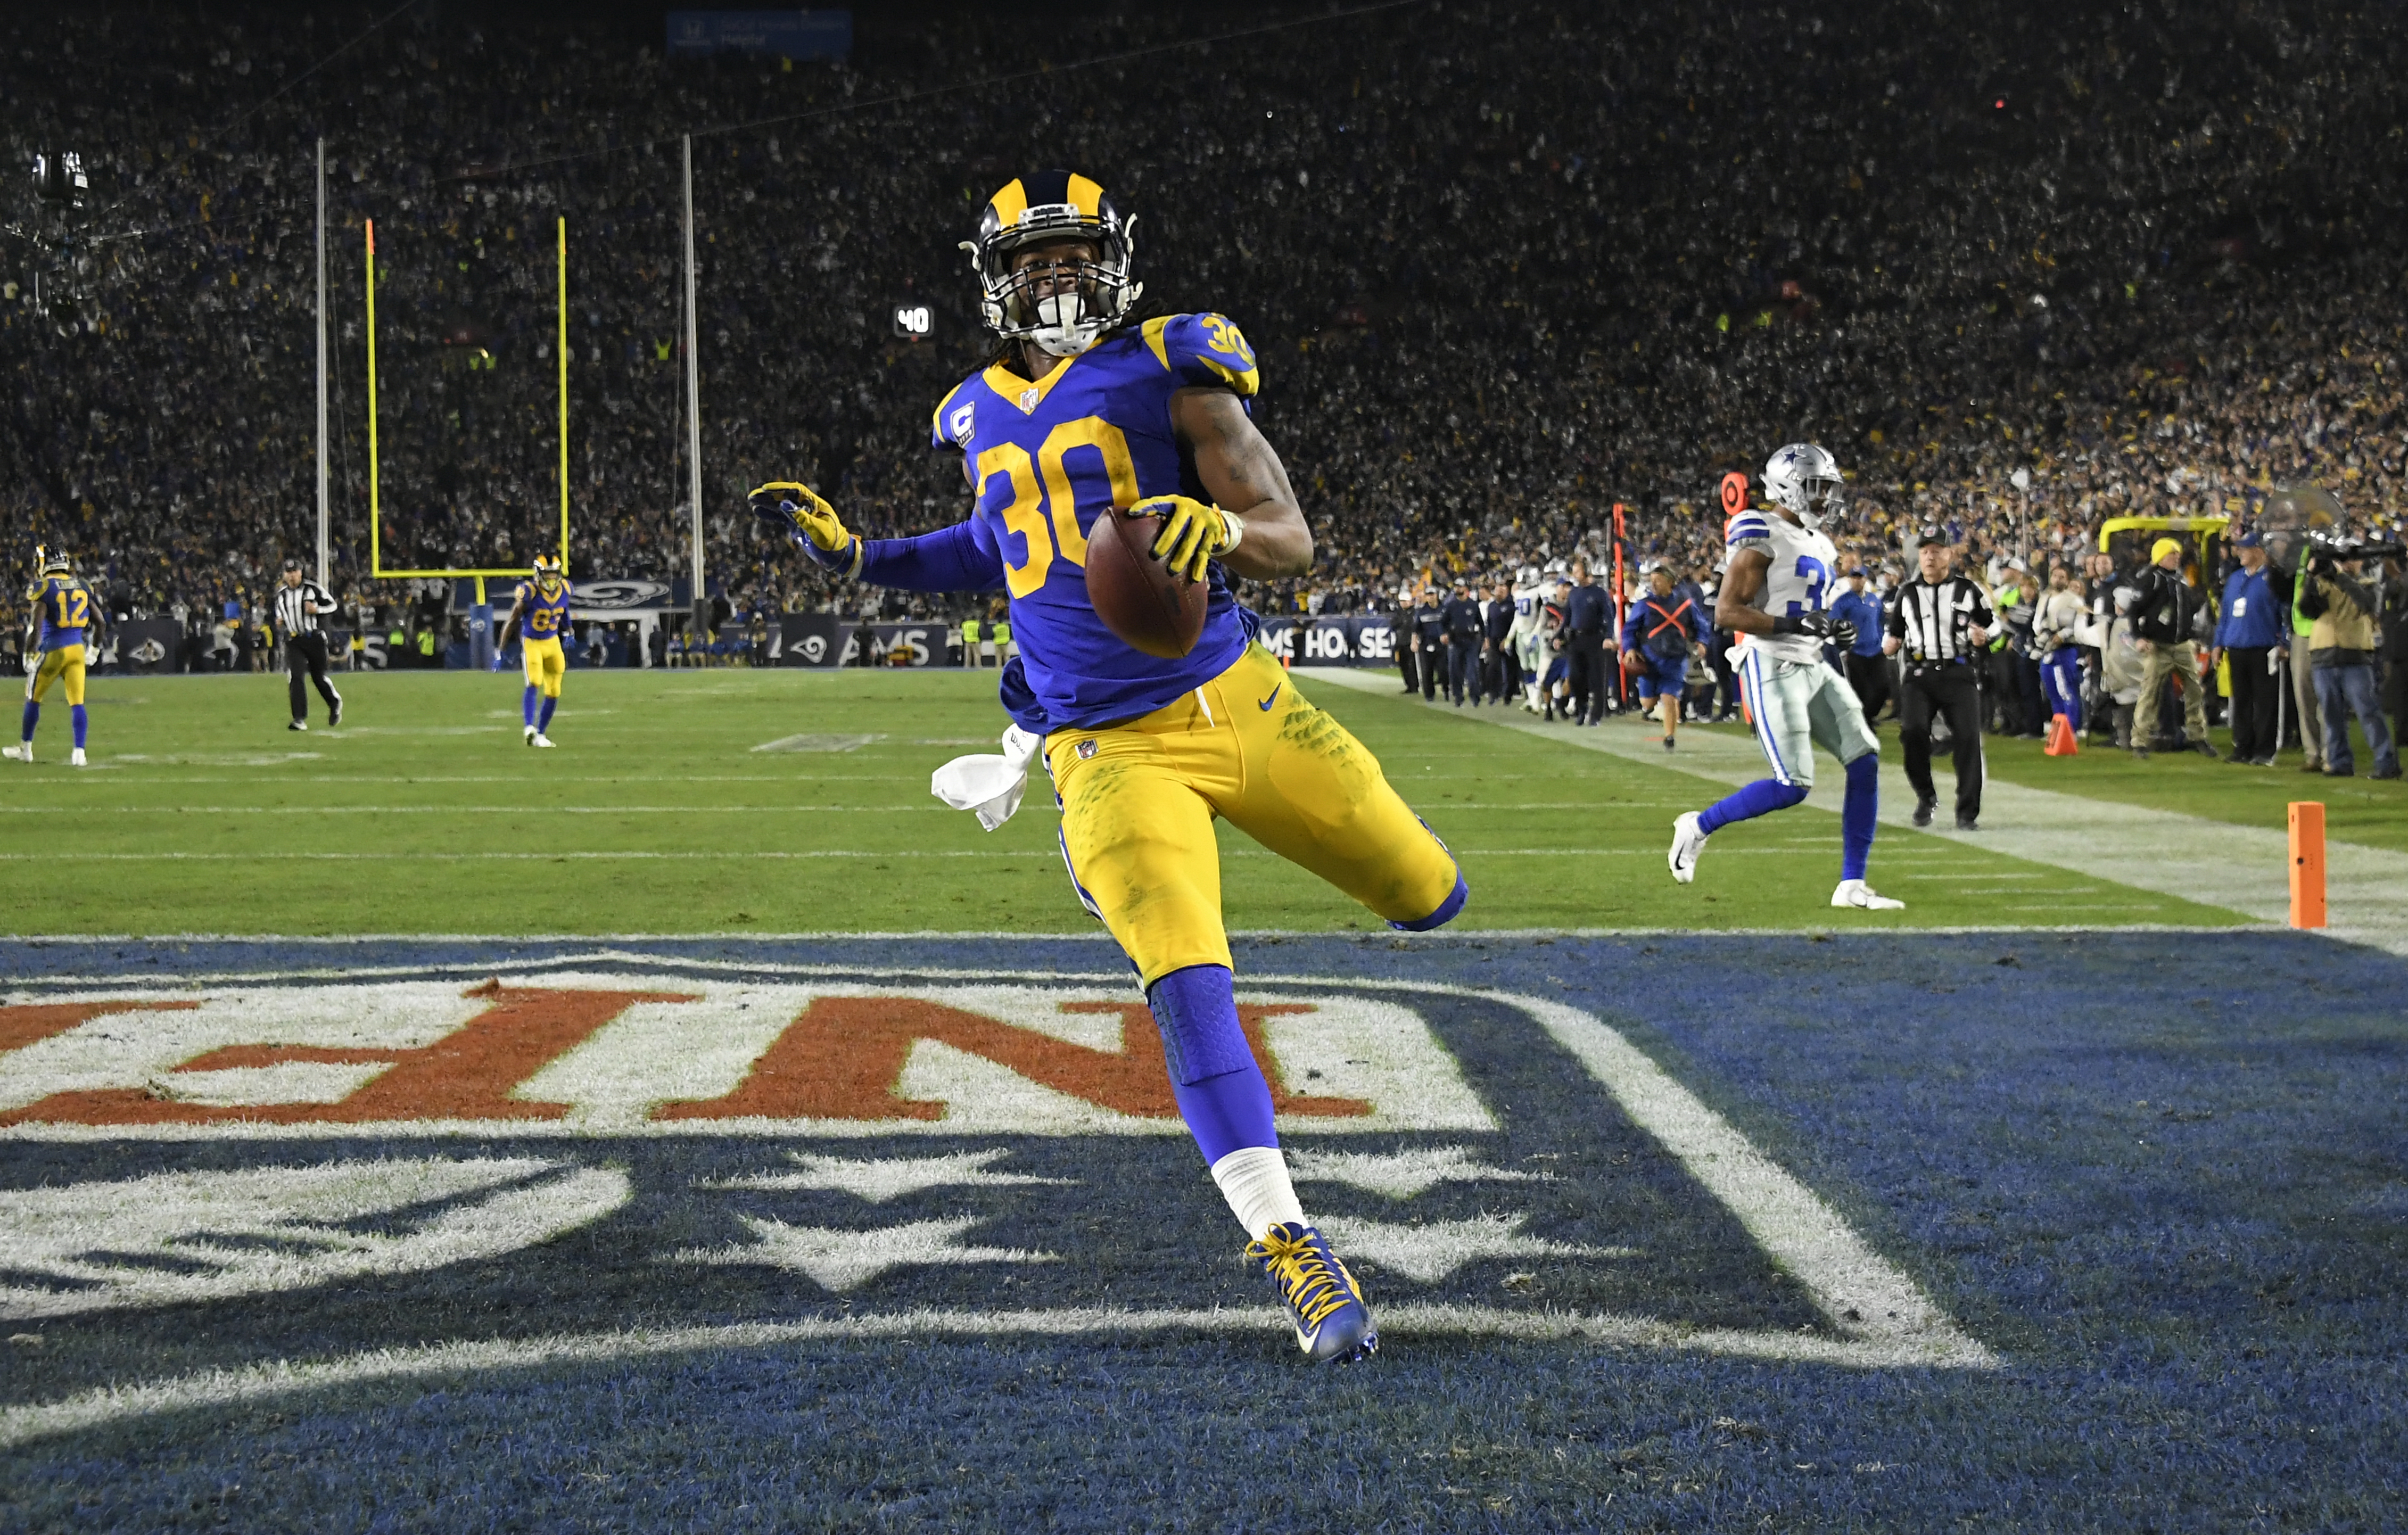 Los Angeles Rams RB Todd Gurley scores a touchdown against the Dallas Cowboys in the Divisional Round of the 2019 NFL Playoffs, Jan. 12, 2019.